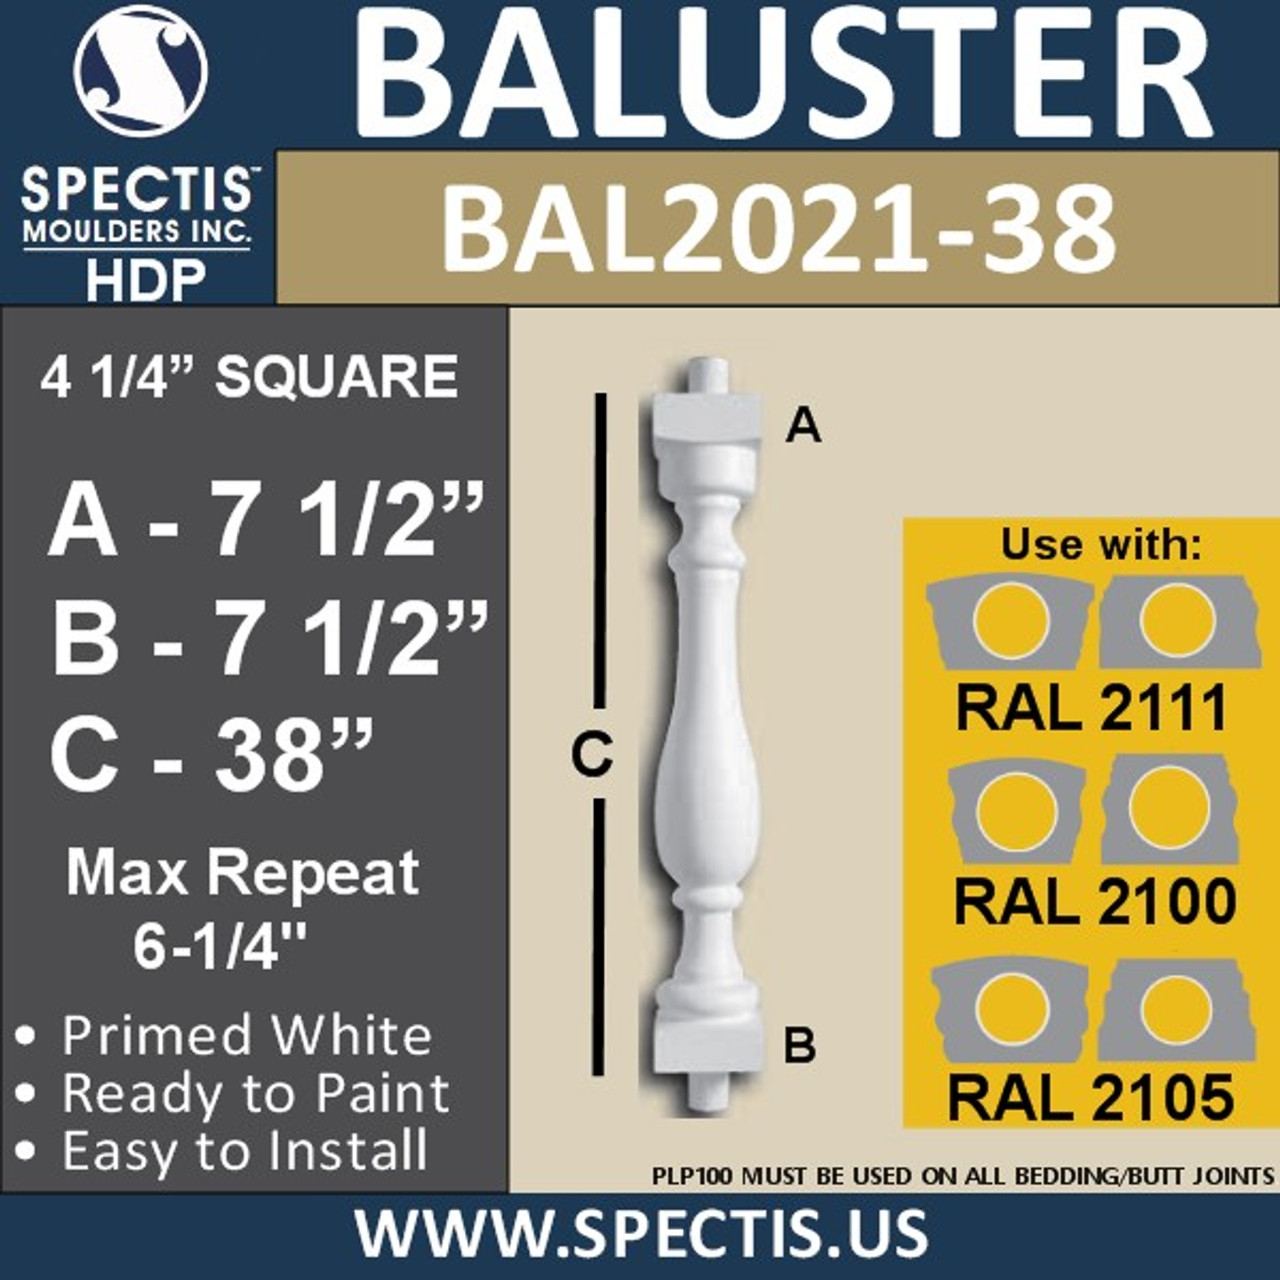 """BAL2021-38 Urethane Baluster or Spindle 4 1/4""""W X 38""""H"""